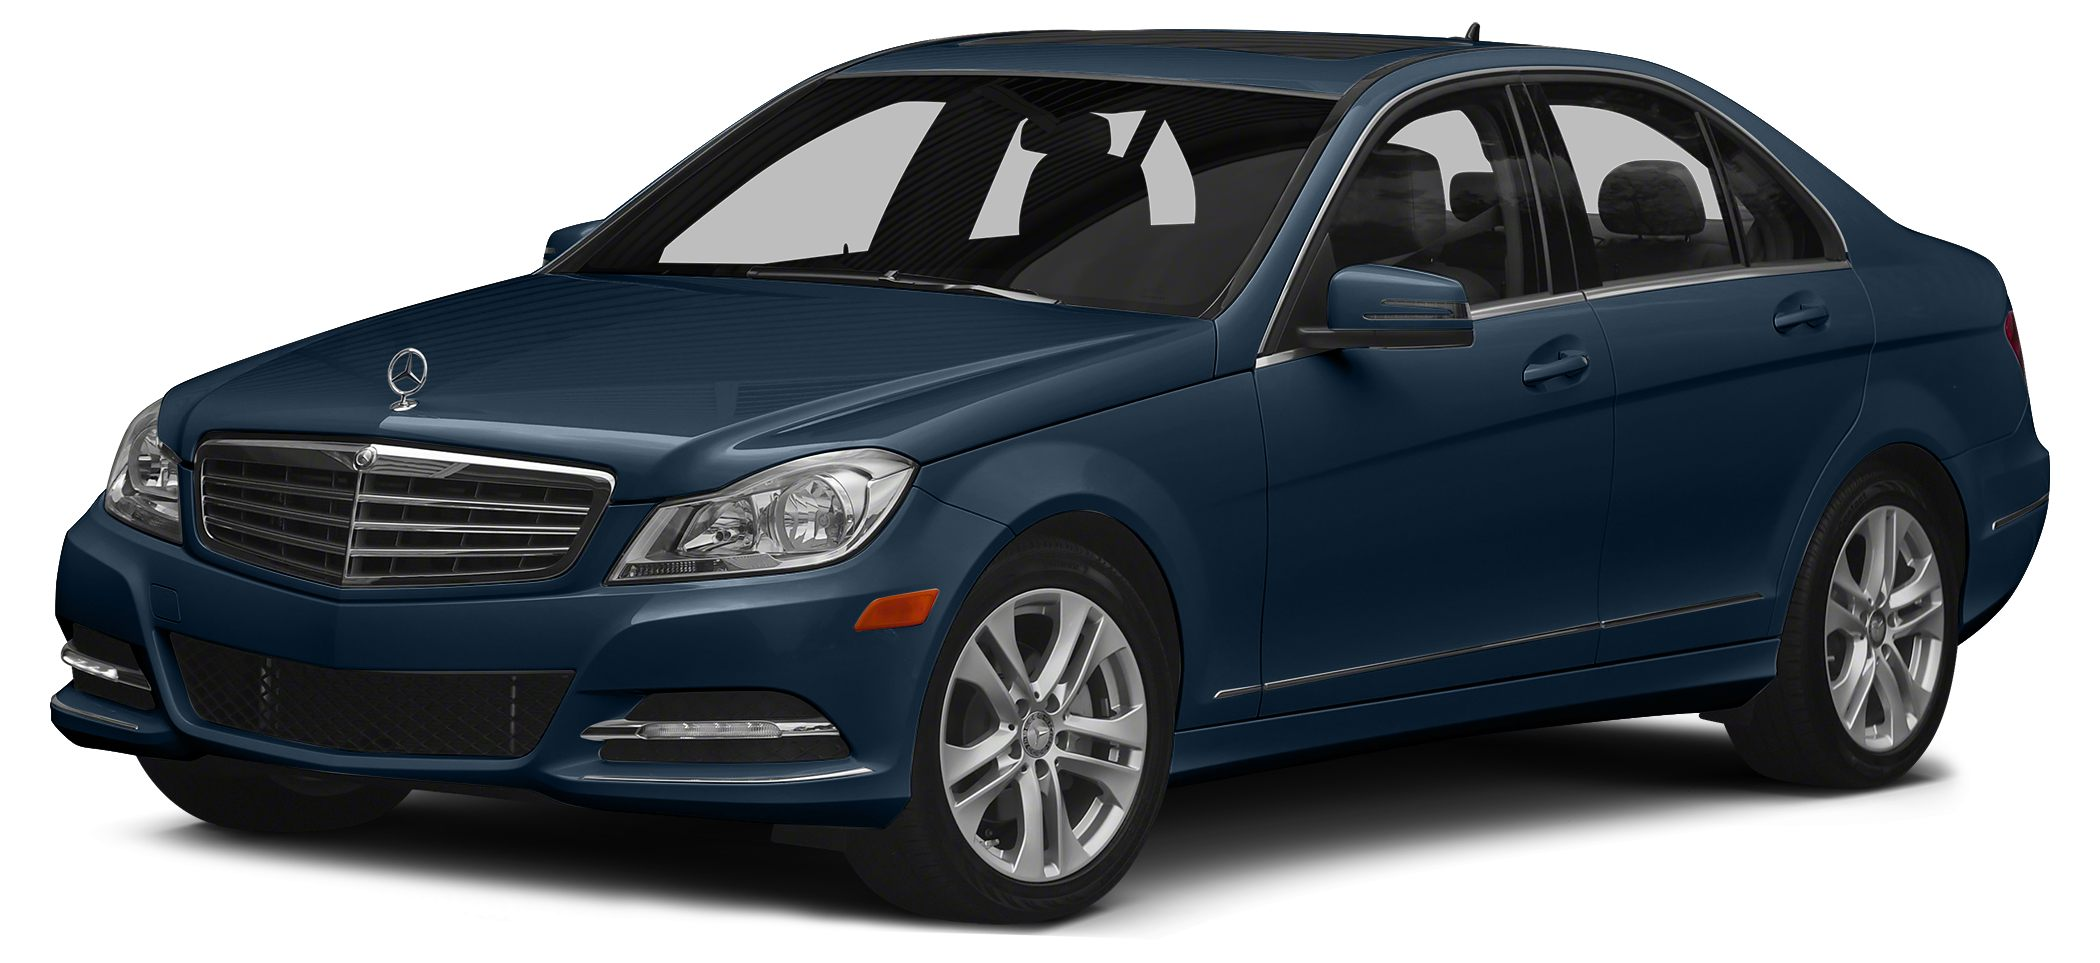 2013 MERCEDES C-Class C300 Luxury 4MATIC For more information on this vehicle contactKia Certified